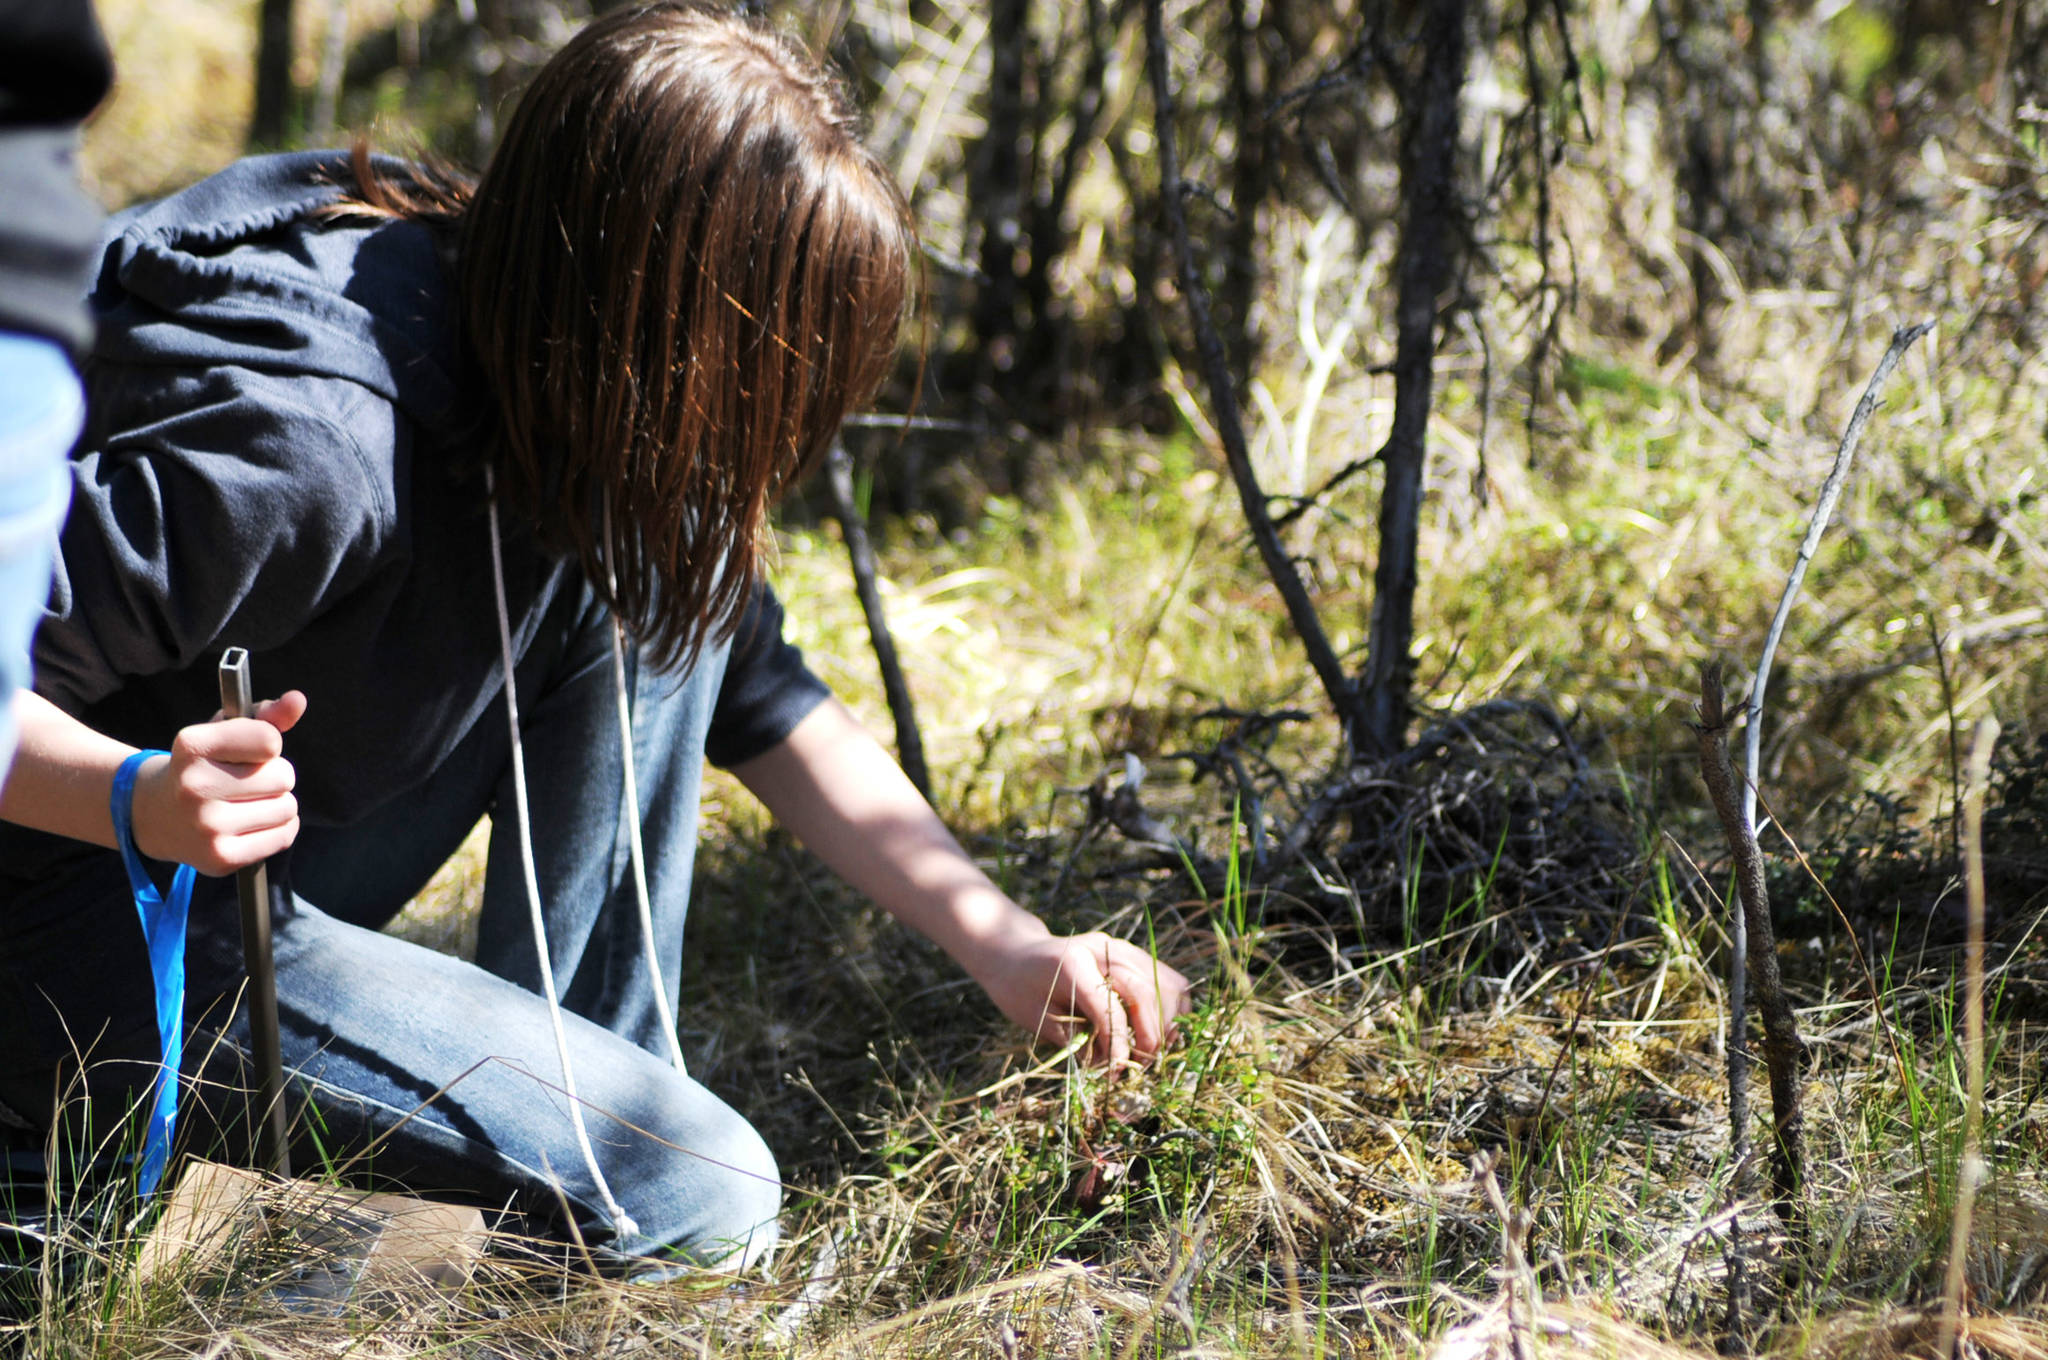 Cadence Cooper, a 6th grade student at Tustumena Elementary, inspects a plant by the side of a trail behind the school on Tuesday, May 22, 2018 in Kasilof, Alaska. (Photo by Elizabeth Earl/Peninsula Clarion)